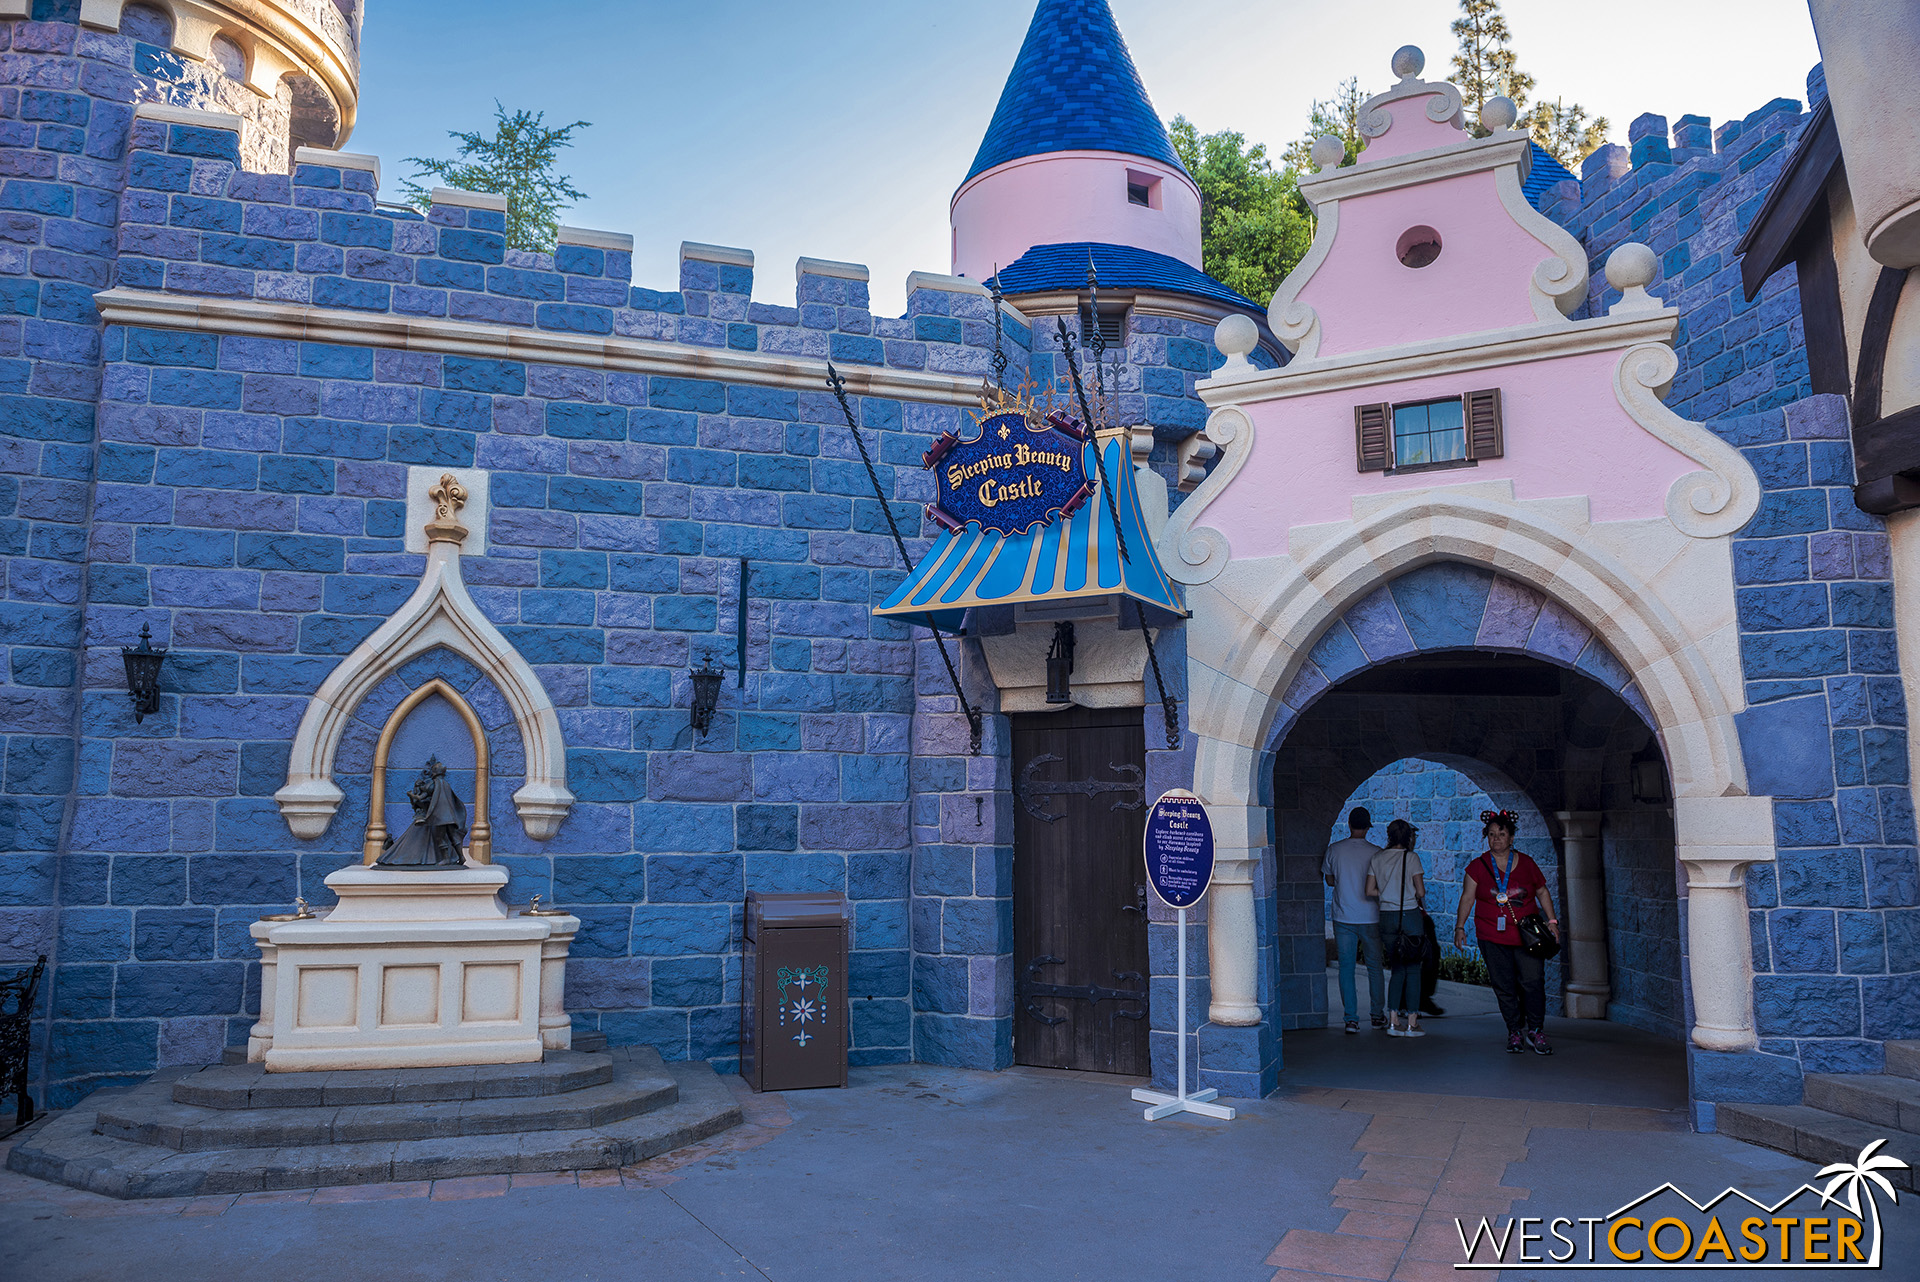 To Frontierland and Fantasy Faire…